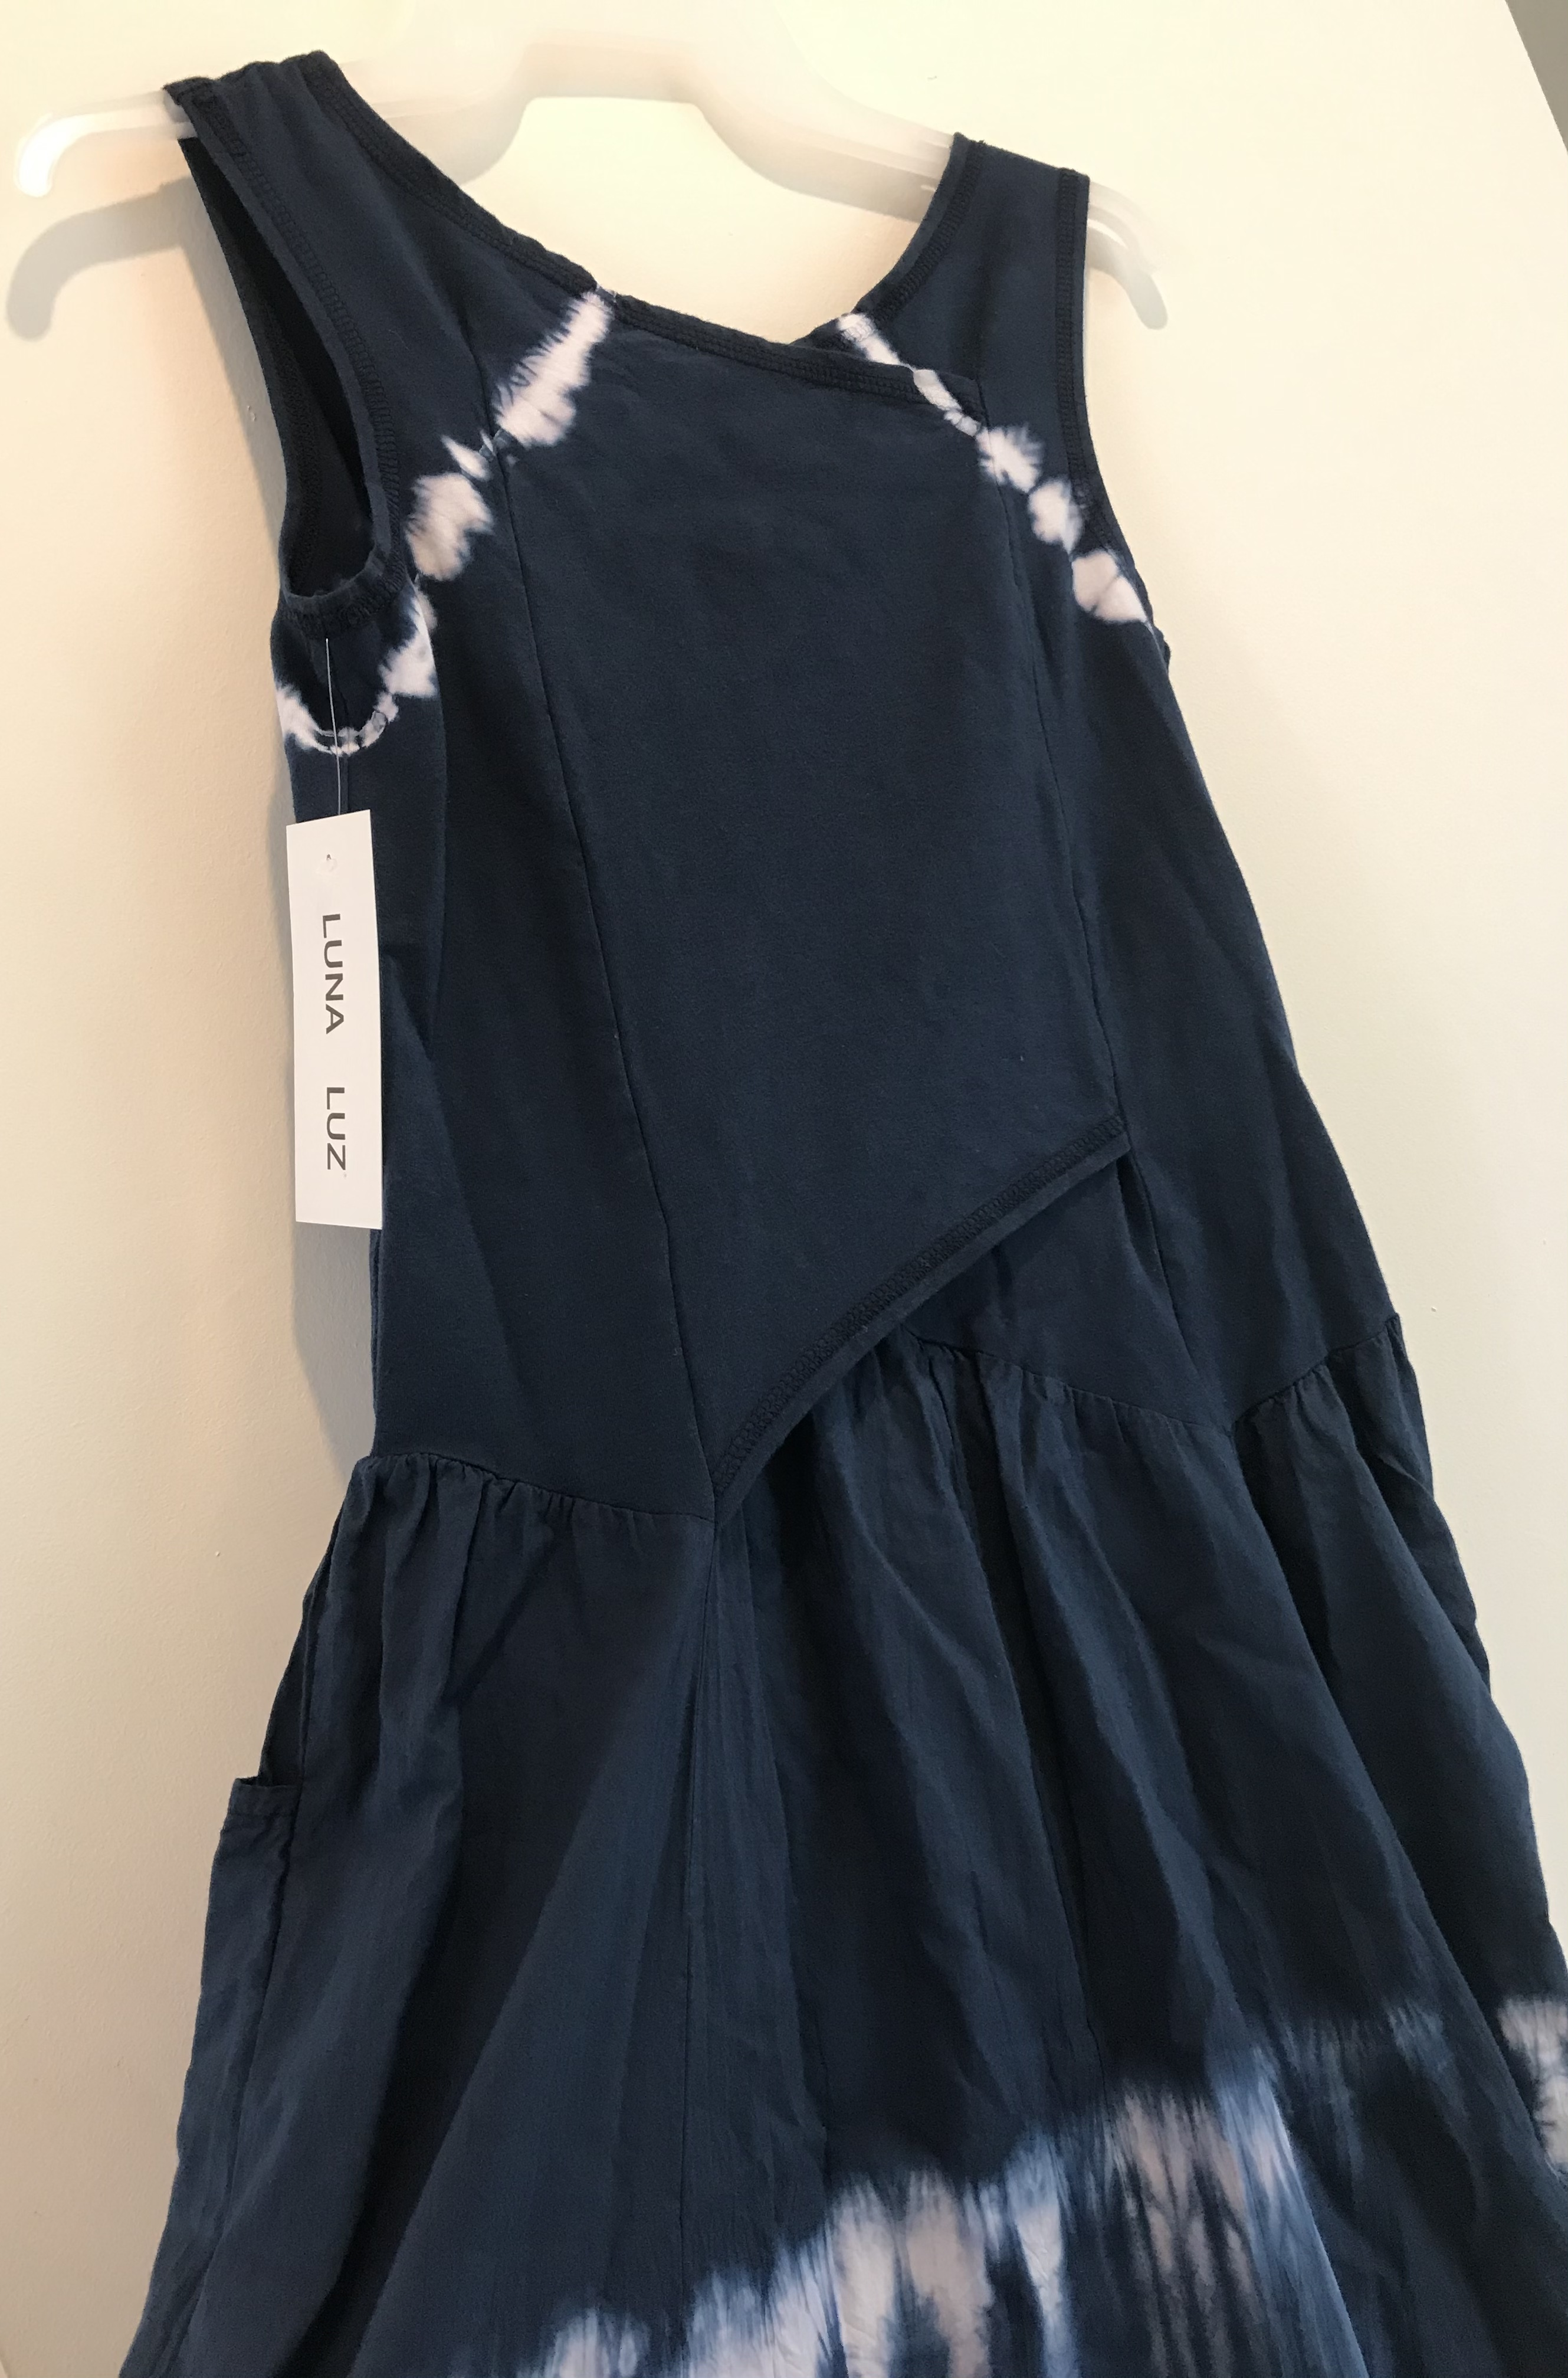 Luna Luz: Cross Over Bodice Maxi Dress (Ships Immed, 1 Left in Inkwell!)